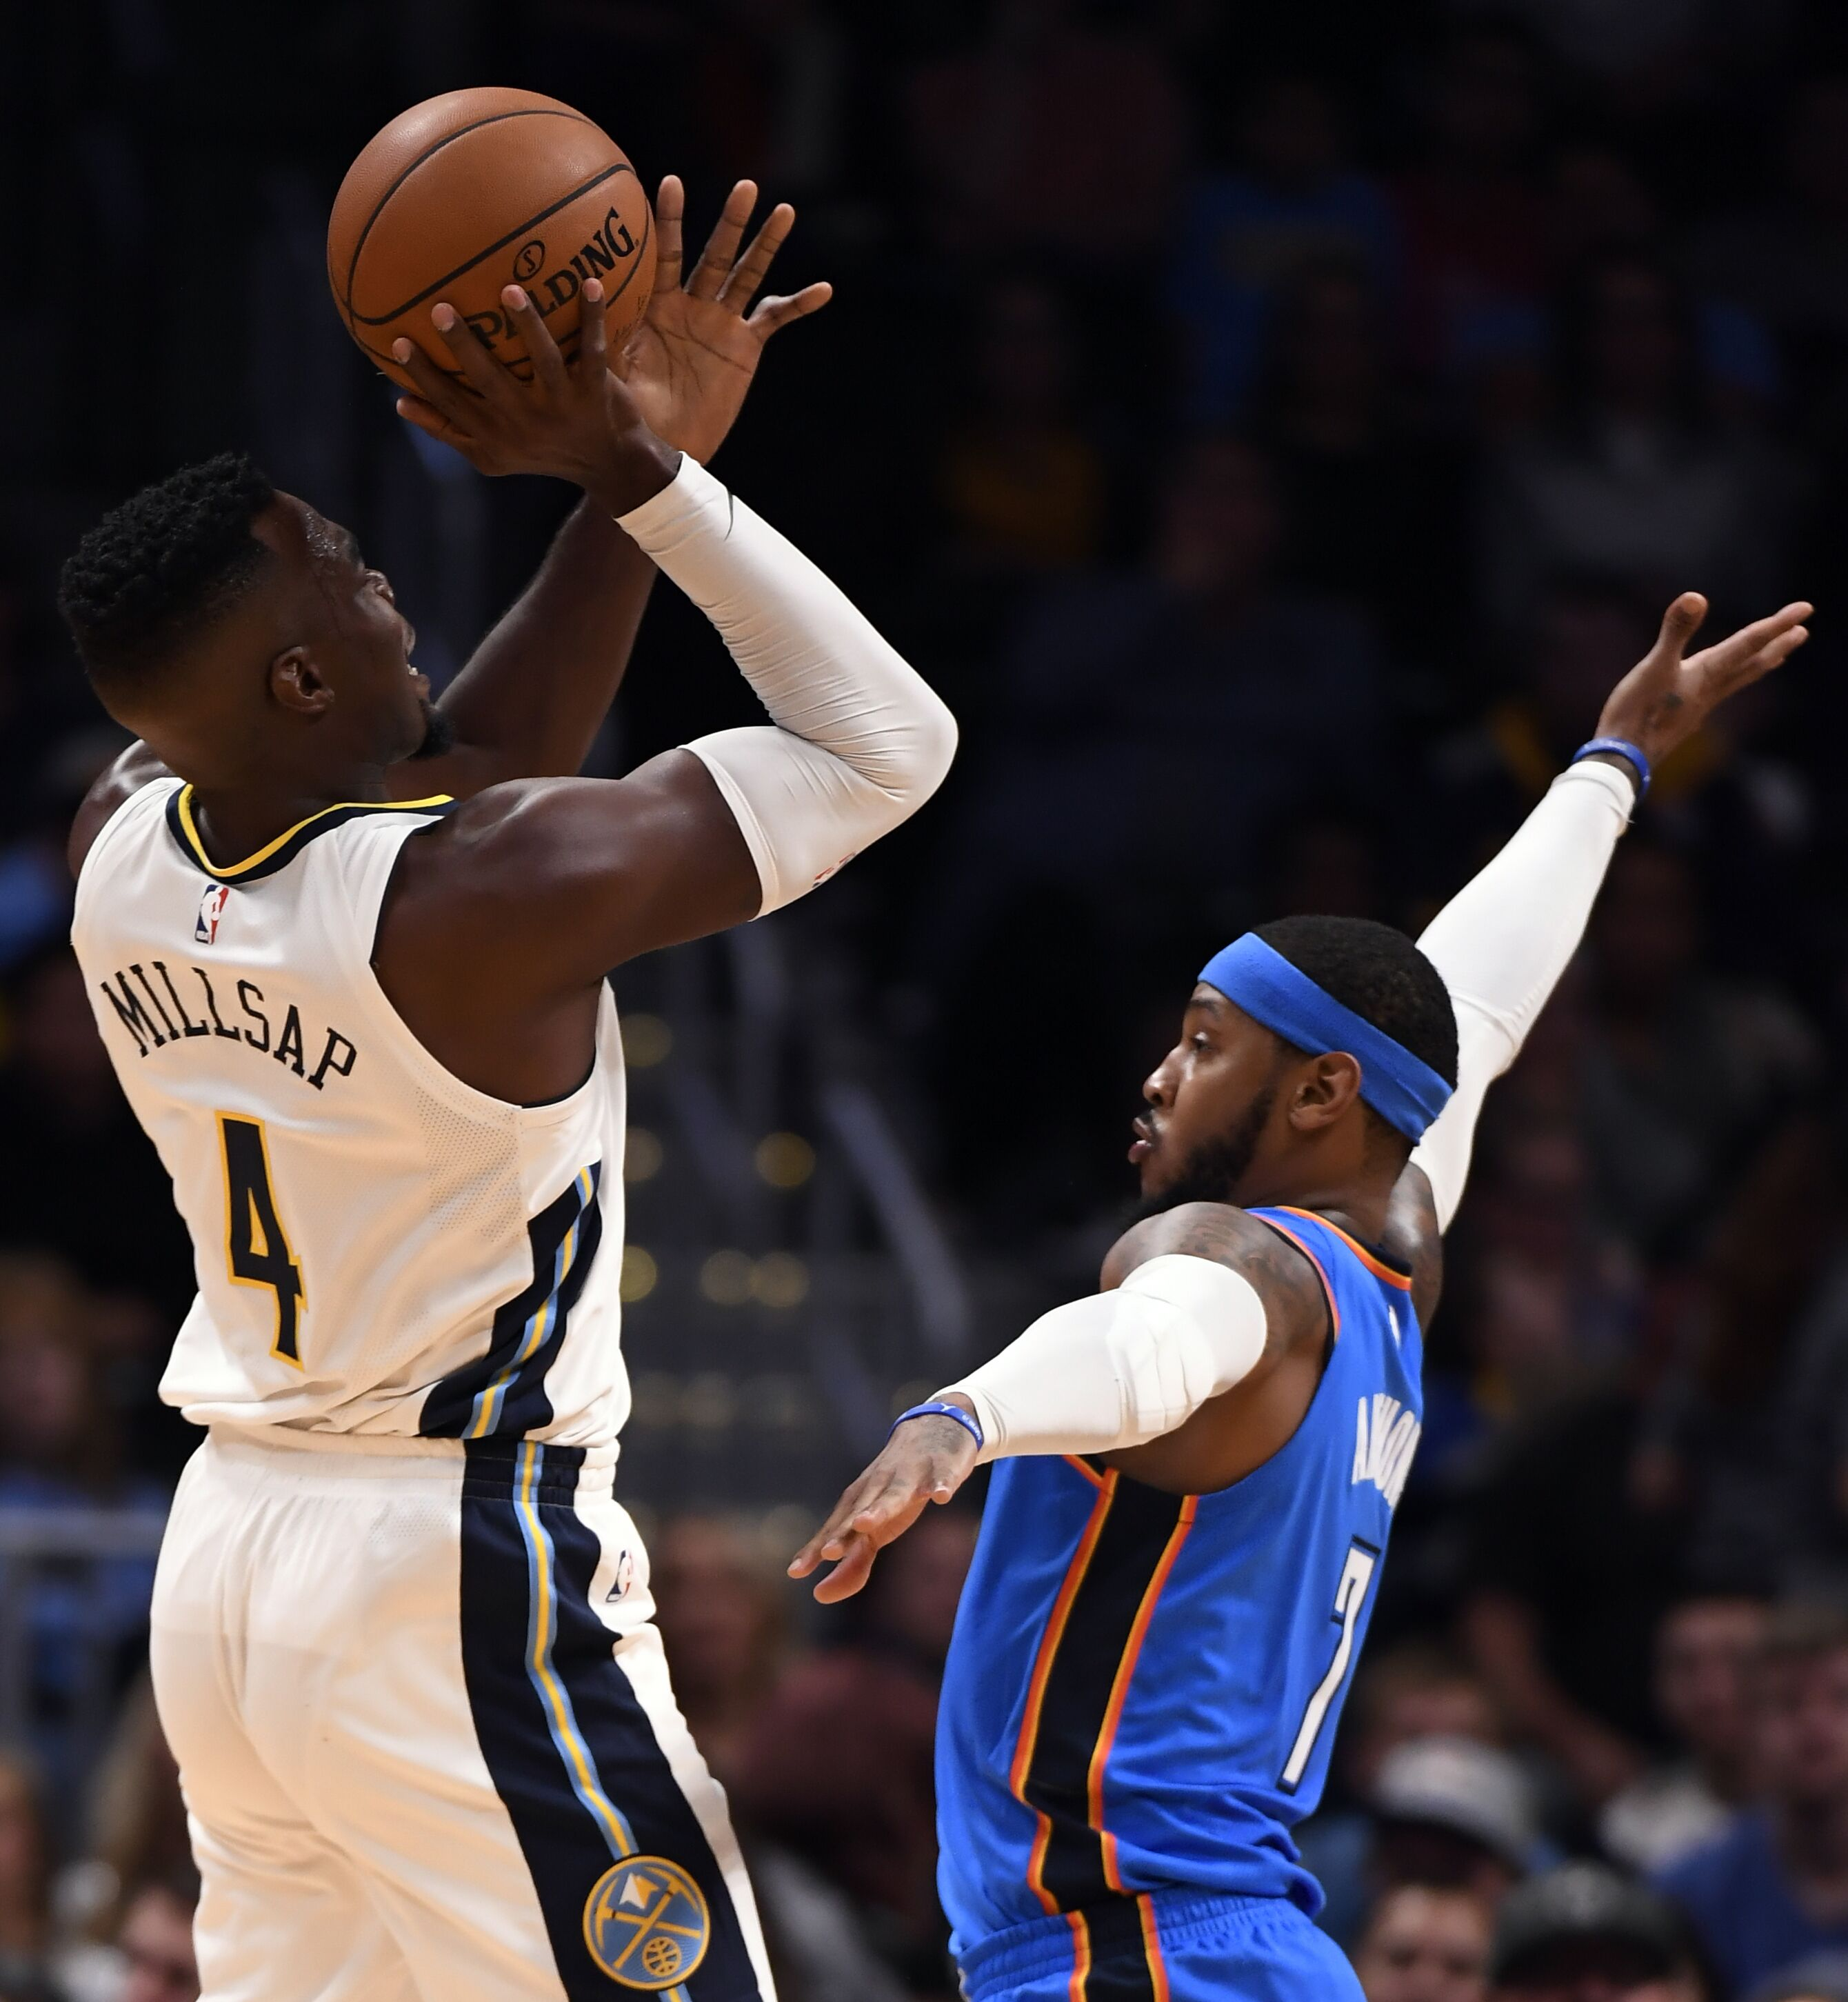 Denver Nuggets Struggling Without Star Power: Paul Millsap May Be In For A Shoot Out With Carmelo Anthony